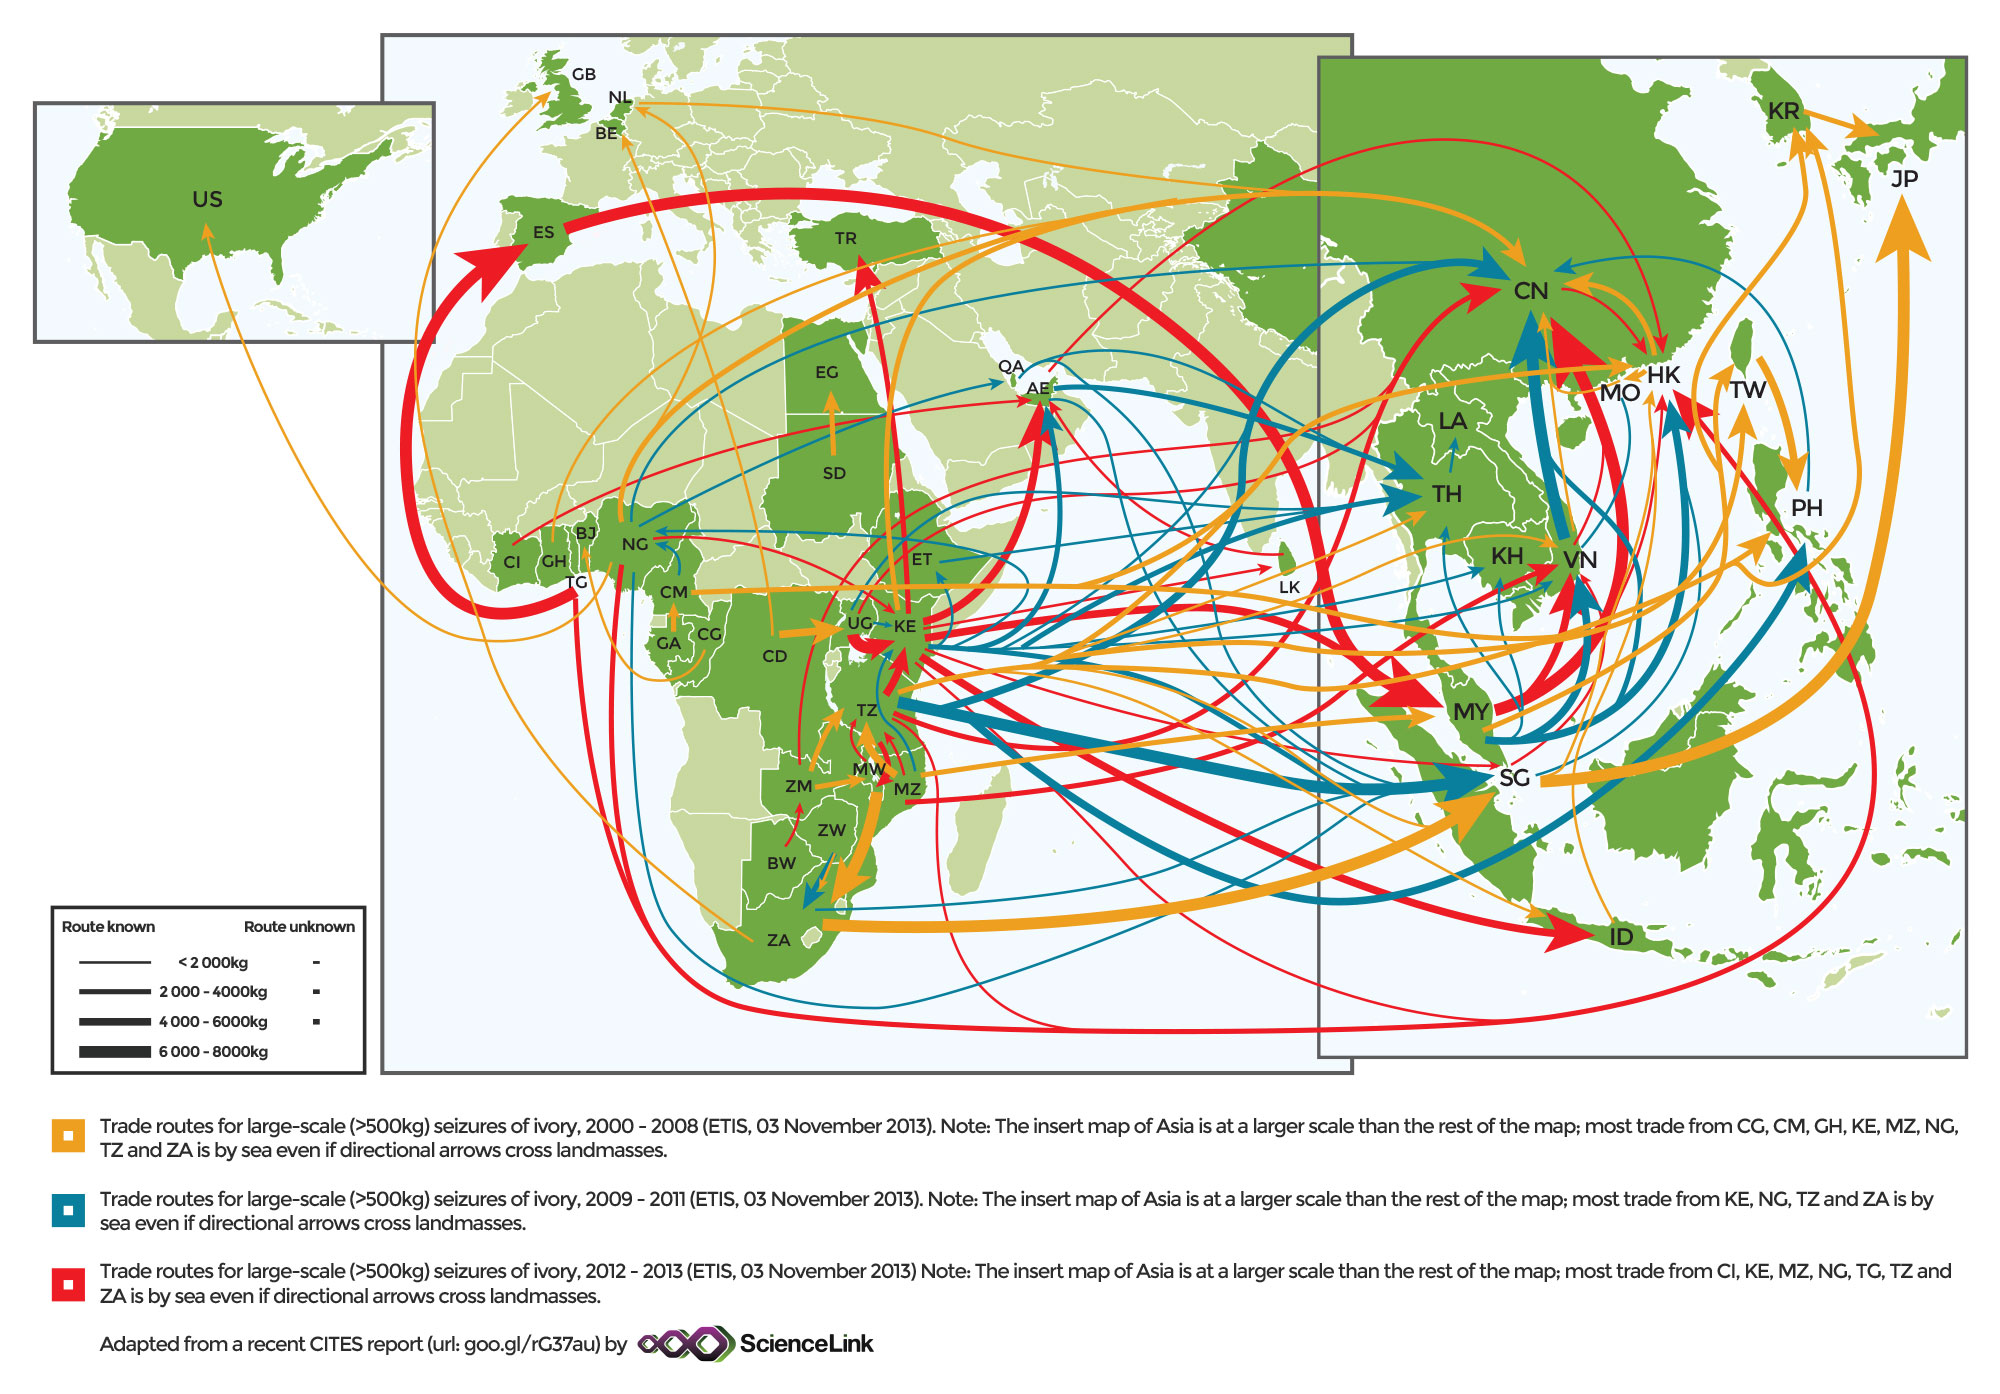 Changes in global ivory trafficking routes from 2000-2013, according to data from ETIS